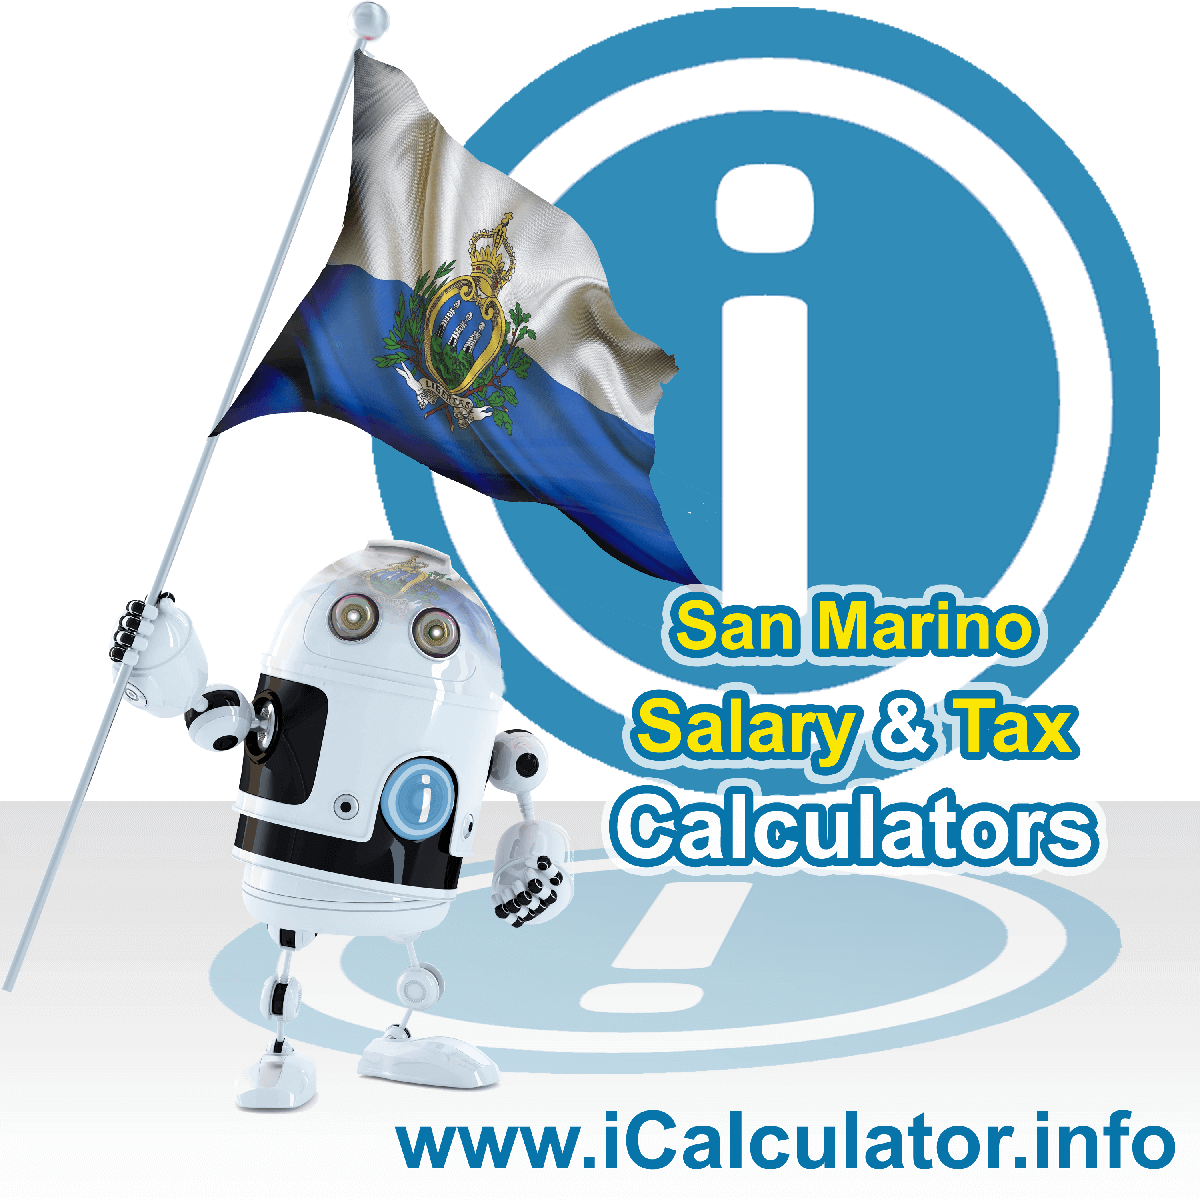 San Marino Wage Calculator. This image shows the San Marino flag and information relating to the tax formula for the San Marino Tax Calculator